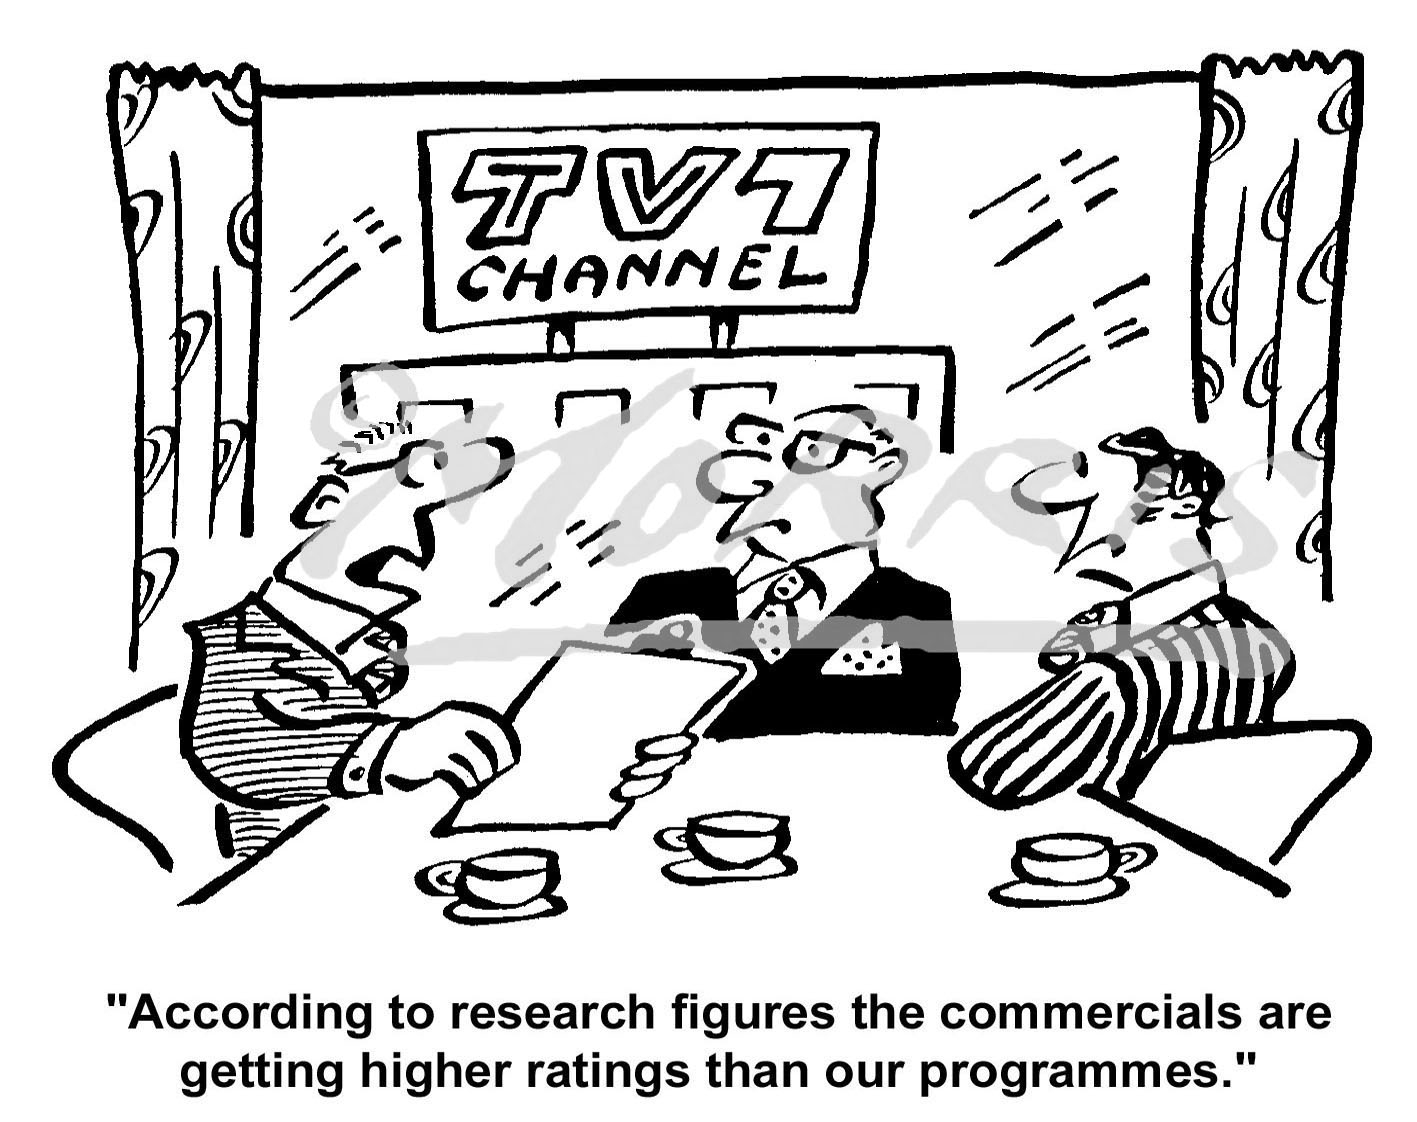 Research figures cartoon Ref: 4317bw